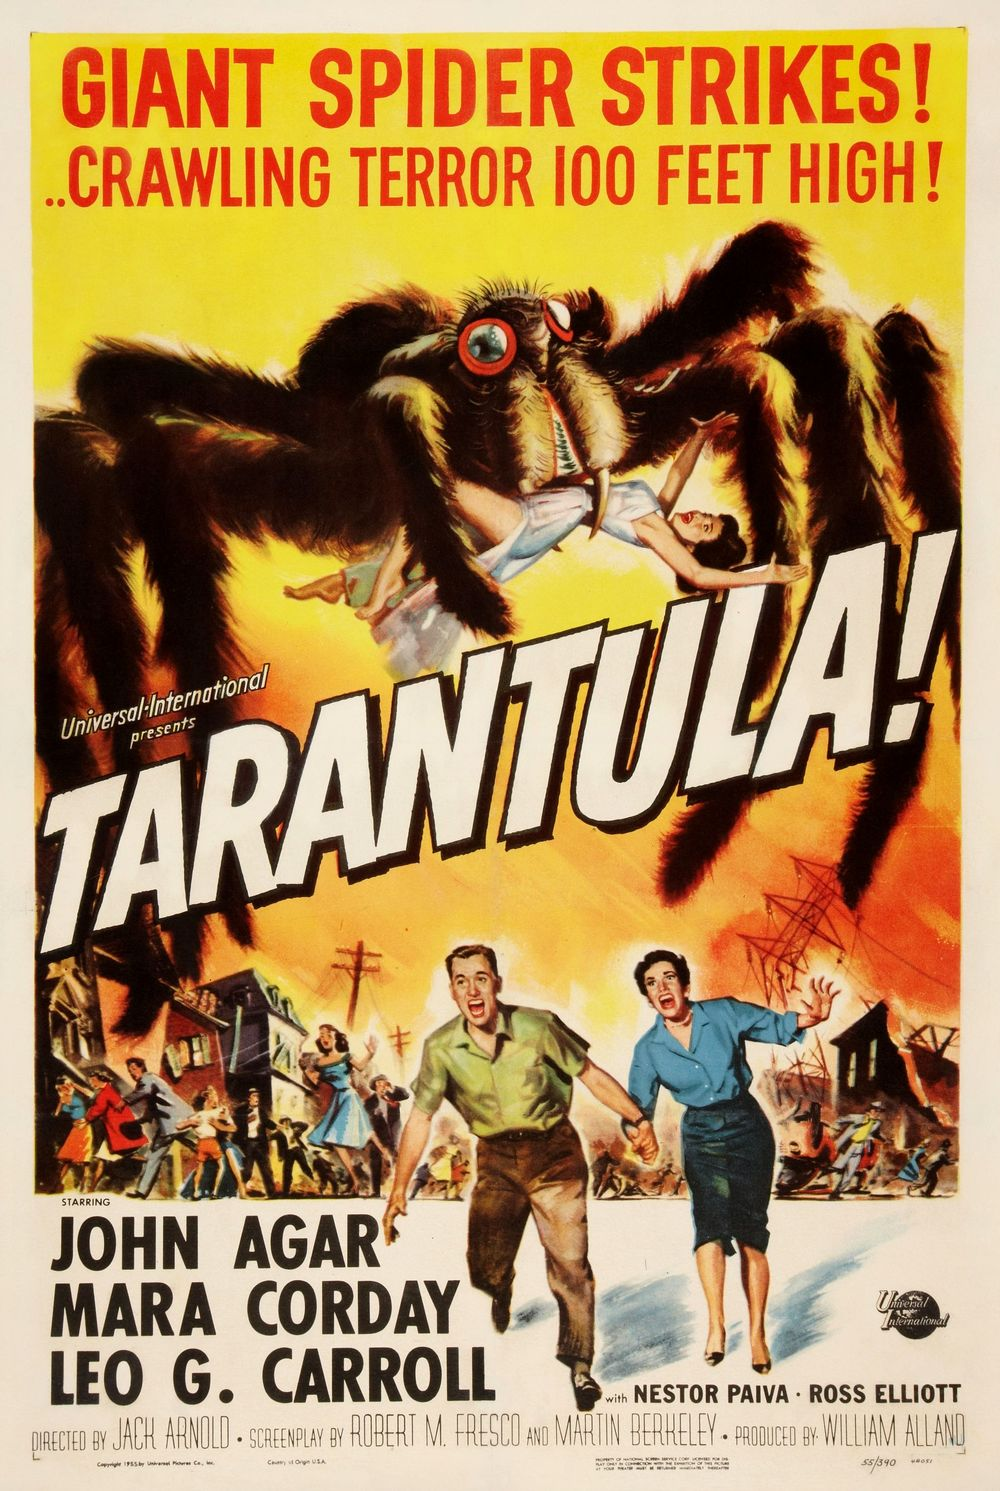 TARANTULA (1955) promised the antics of a giant arachnid with a preference for humans.